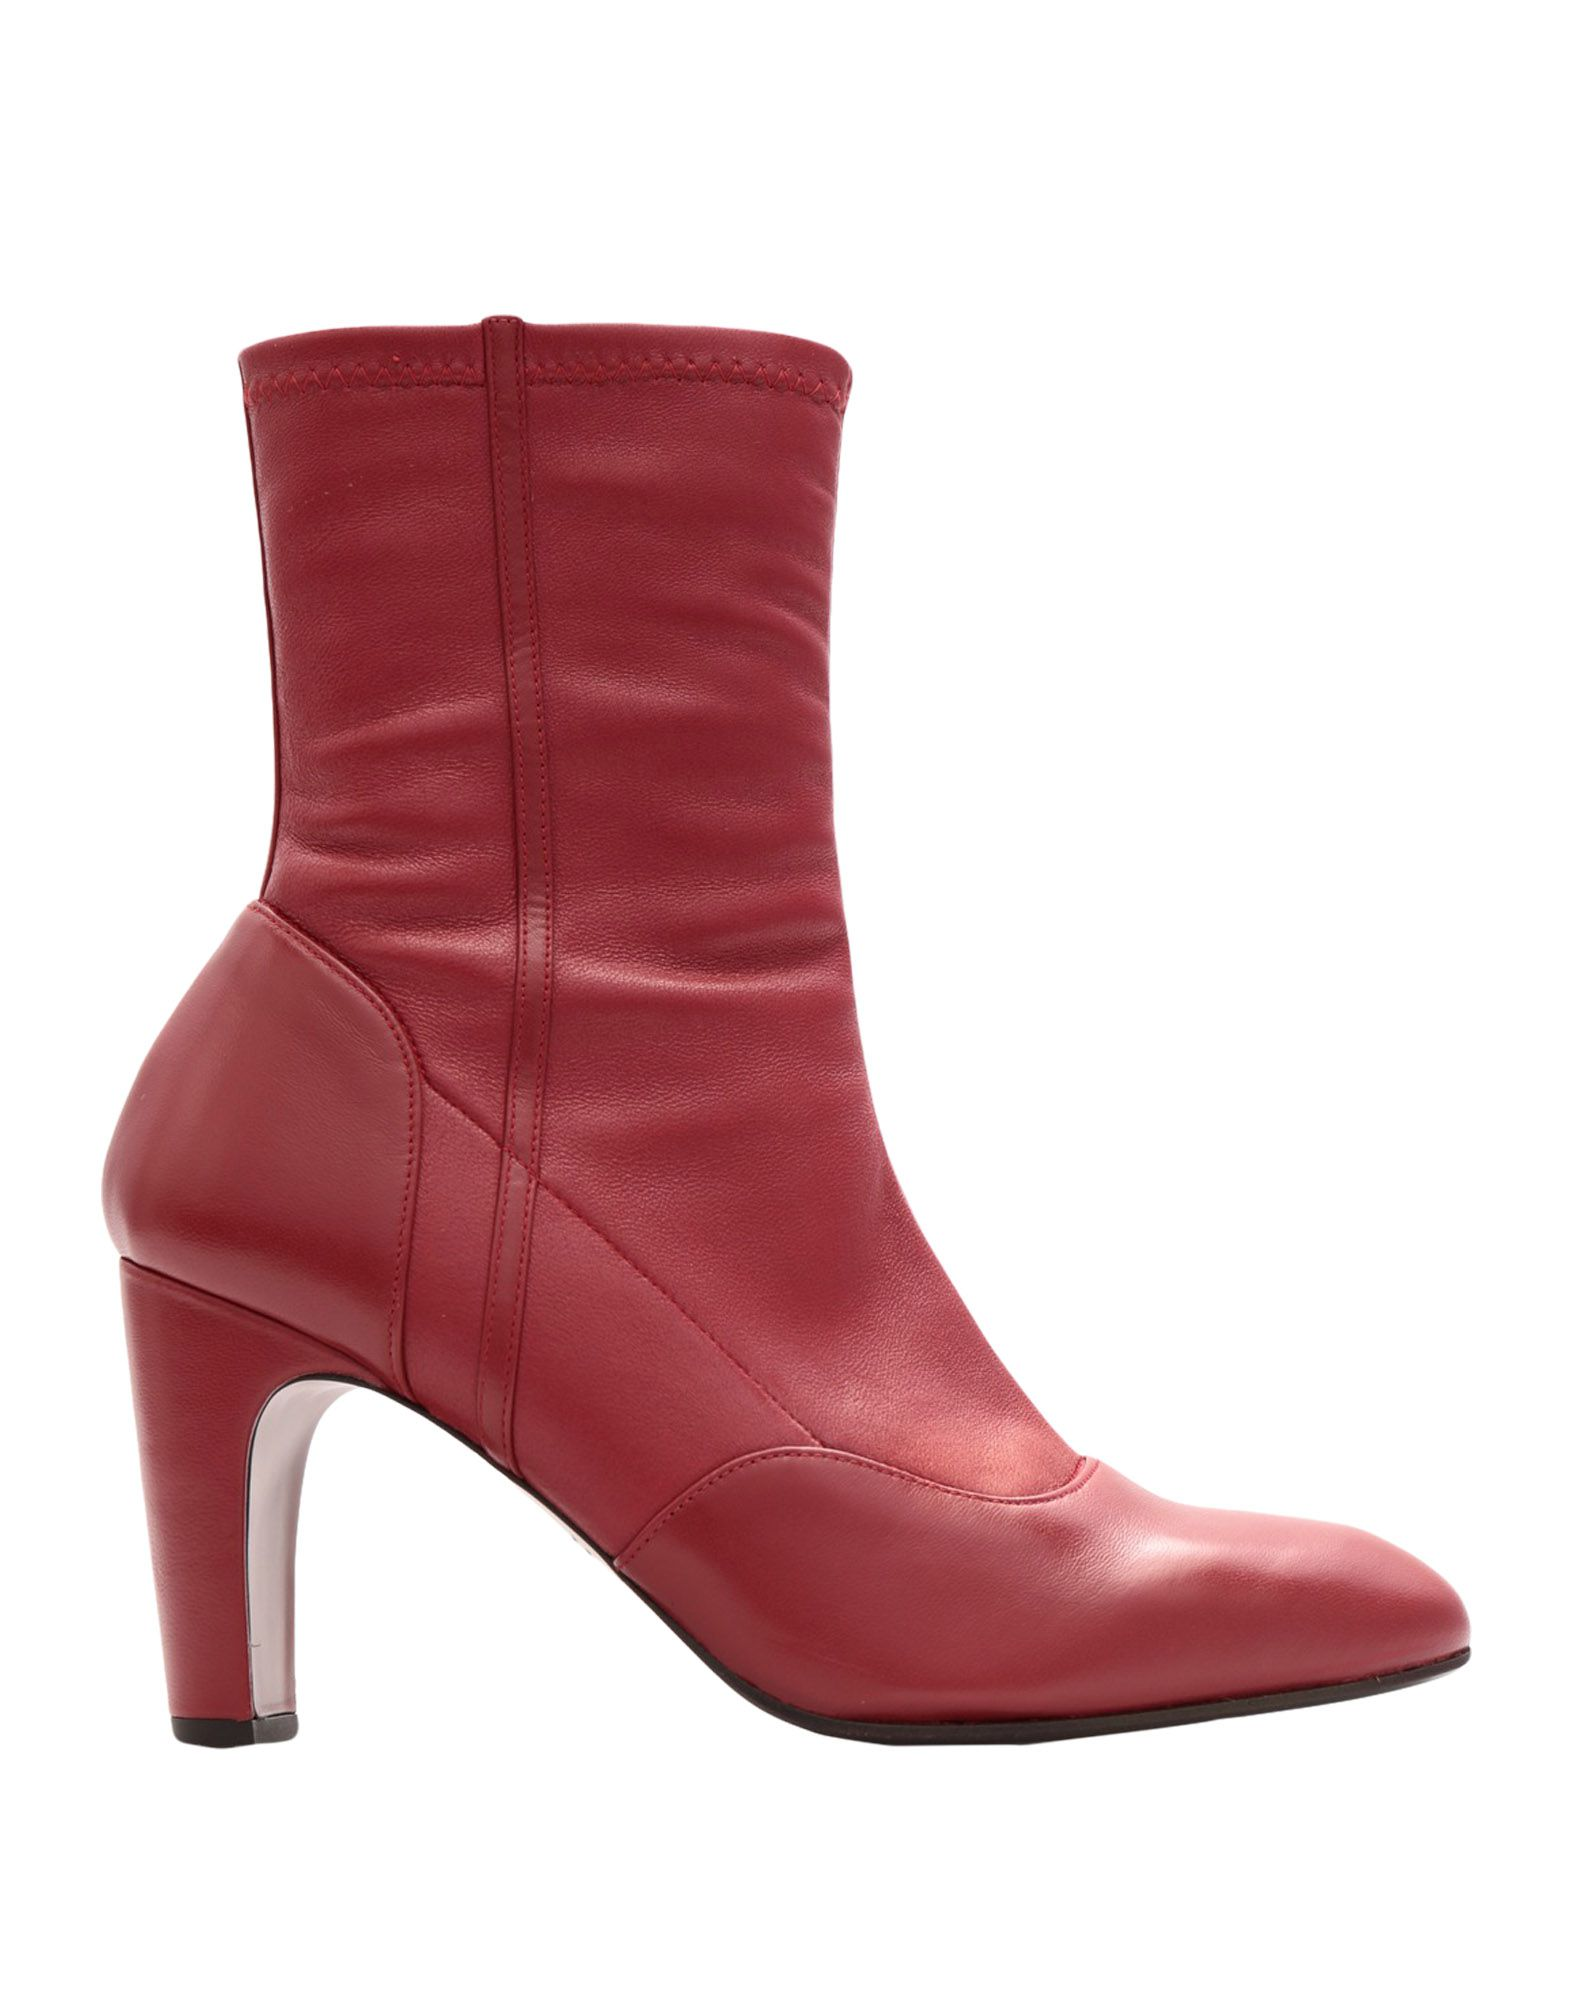 Chie Mihara Chie Ankle Boot - Women Chie Mihara Mihara Ankle Boots online on  Australia - 11548093FB 06224b